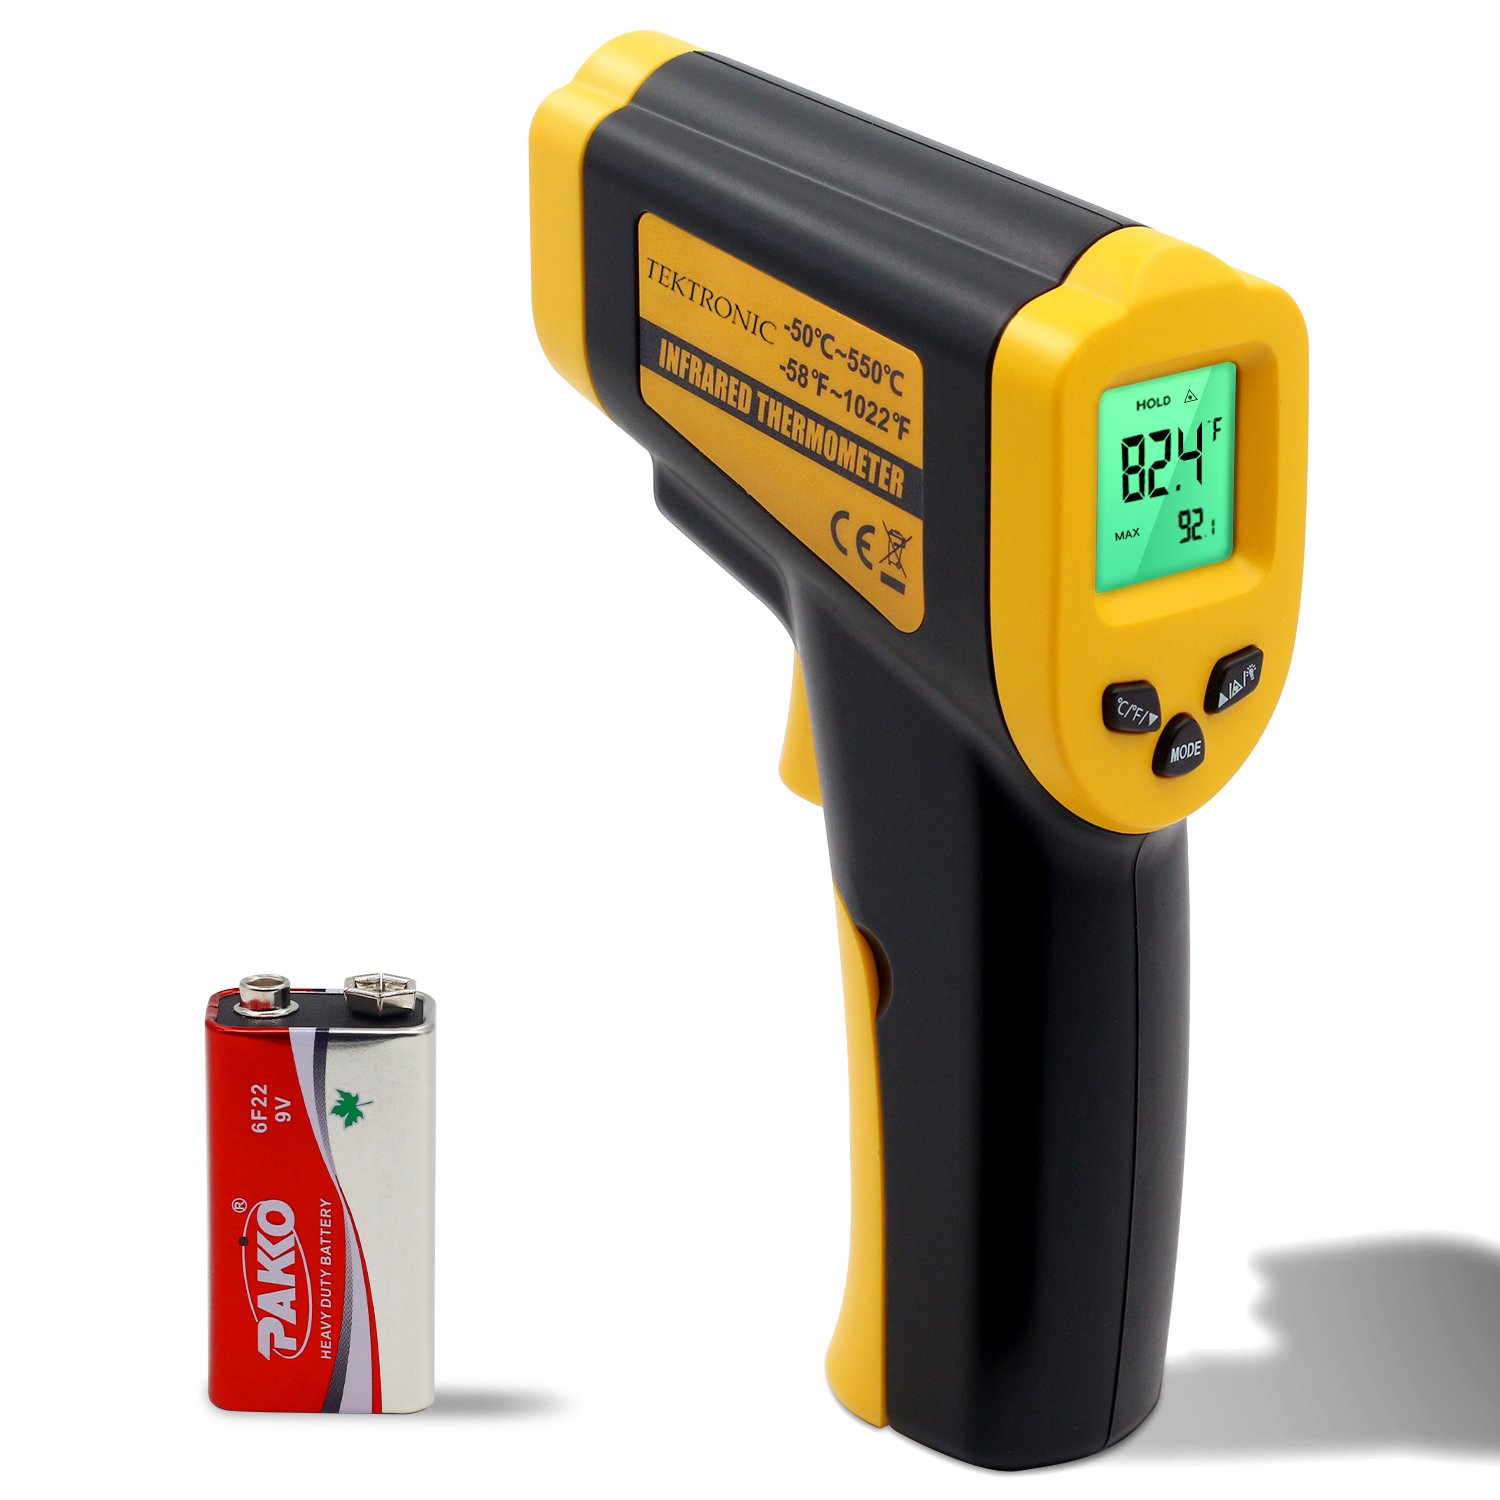 Tektronic IT380 Infrared Non-Contact Thermometer, -50°C~550°C (-58°F~1022°F) Built-in Laser Battery Powered - CE & RoHs Approved